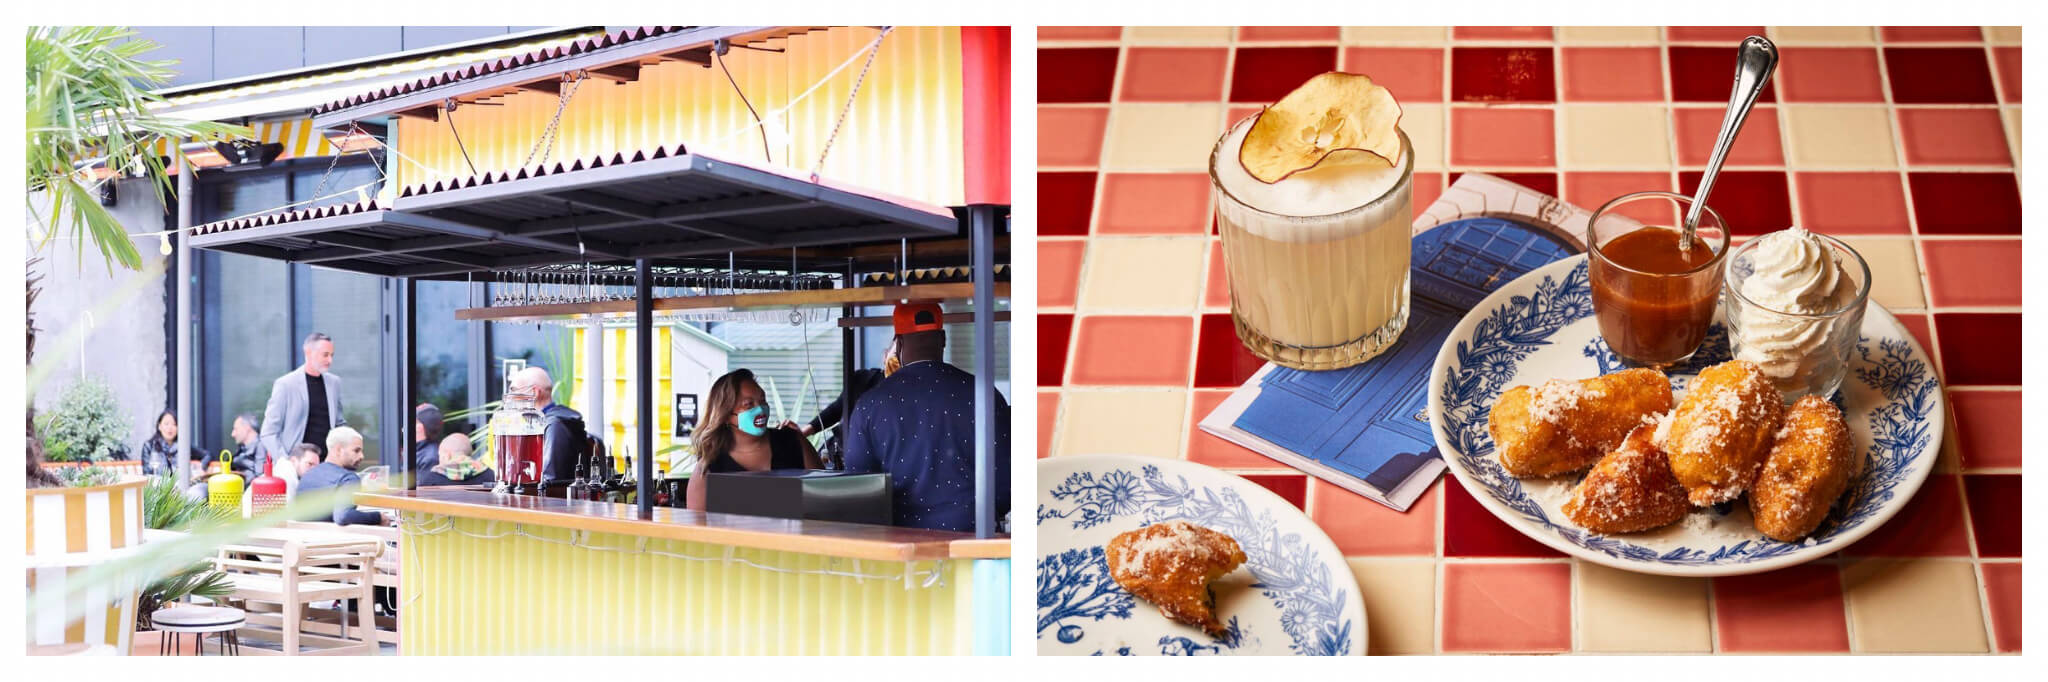 Left: the bar on the terrace of the hotel Mama Shelter West in Paris. It's a yellow container bar, with two bartenders, a man and a woman, inside wearing face masks. There are some people seated and standing outside. Right: a plate of churros with chocolate and ice cream next to a pale yellow colored cocktail, sitting on cream and red tiles.